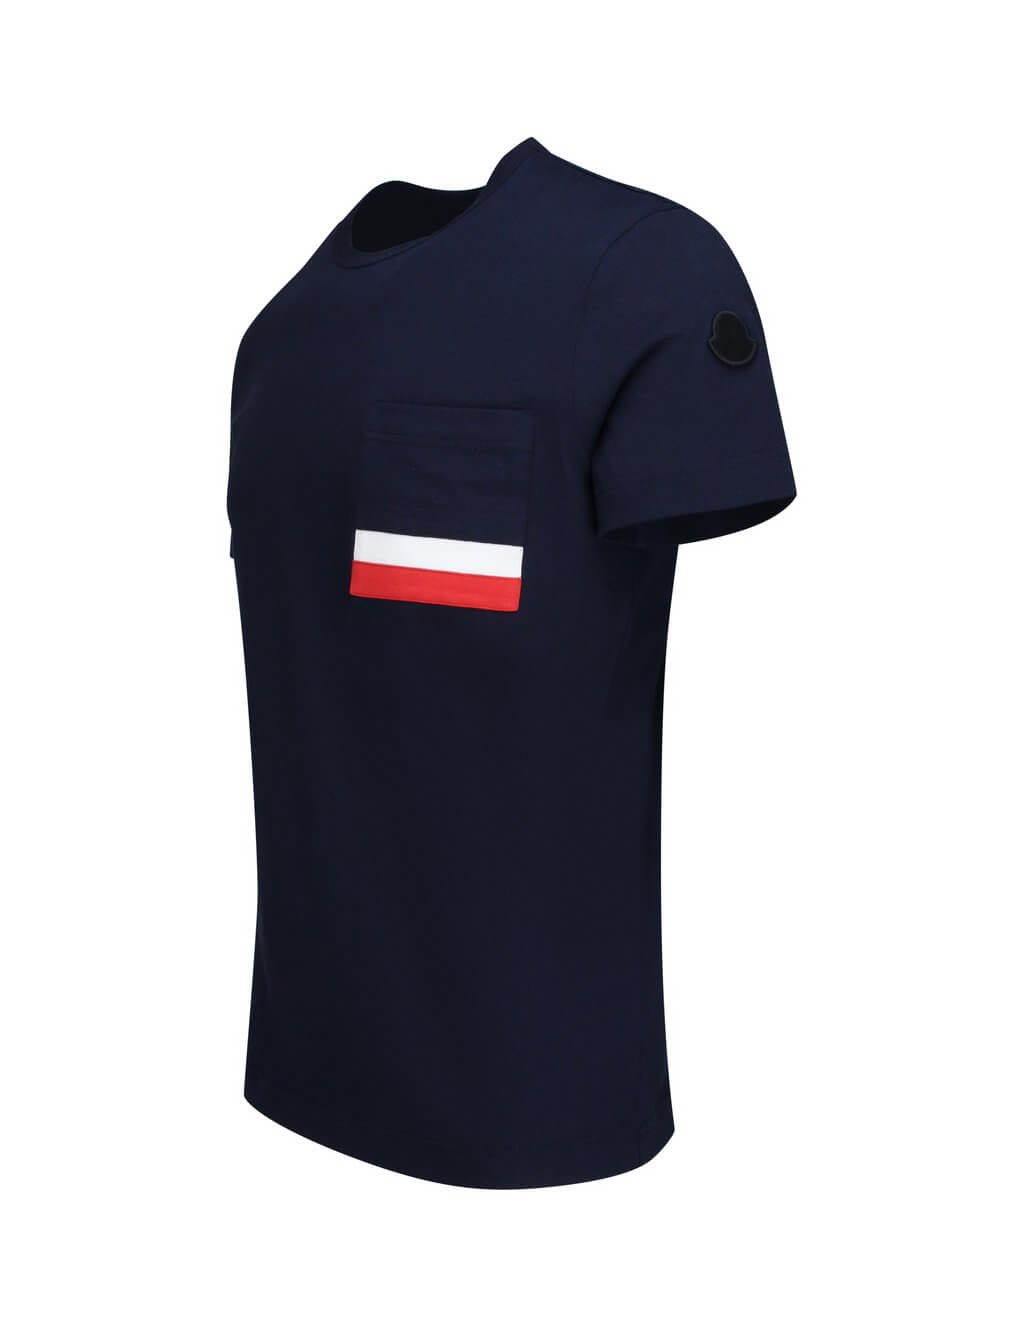 Moncler Men's Giulio Fashion Navy Tricolour Striped T-Shirt 803860089179780